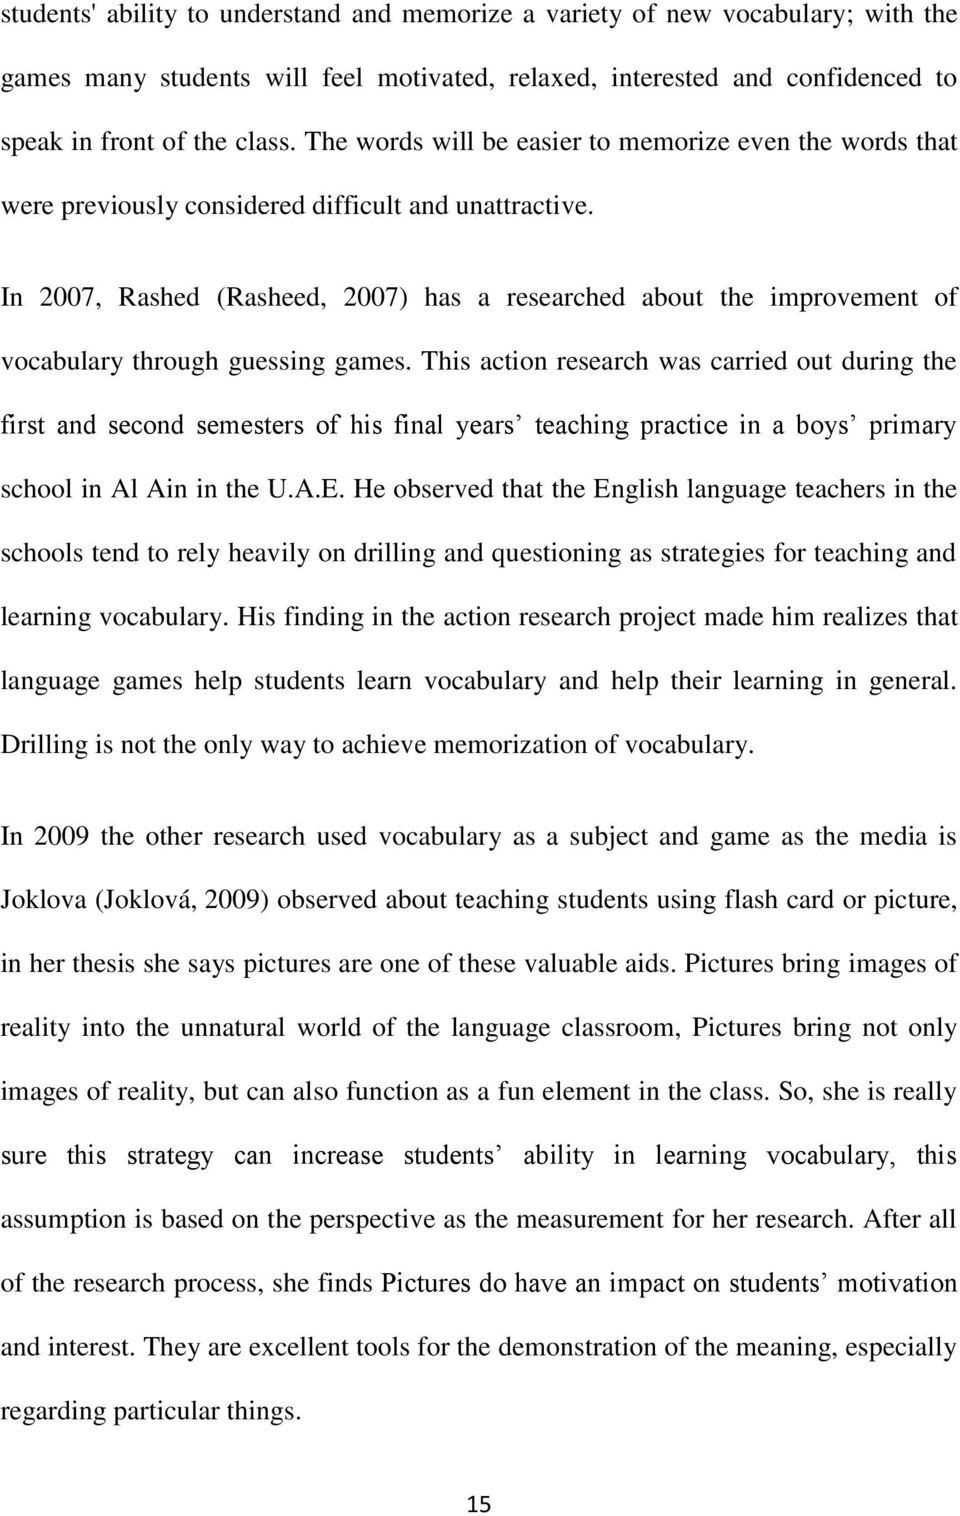 In 2007, Rashed (Rasheed, 2007) has a researched about the improvement of vocabulary through guessing games.